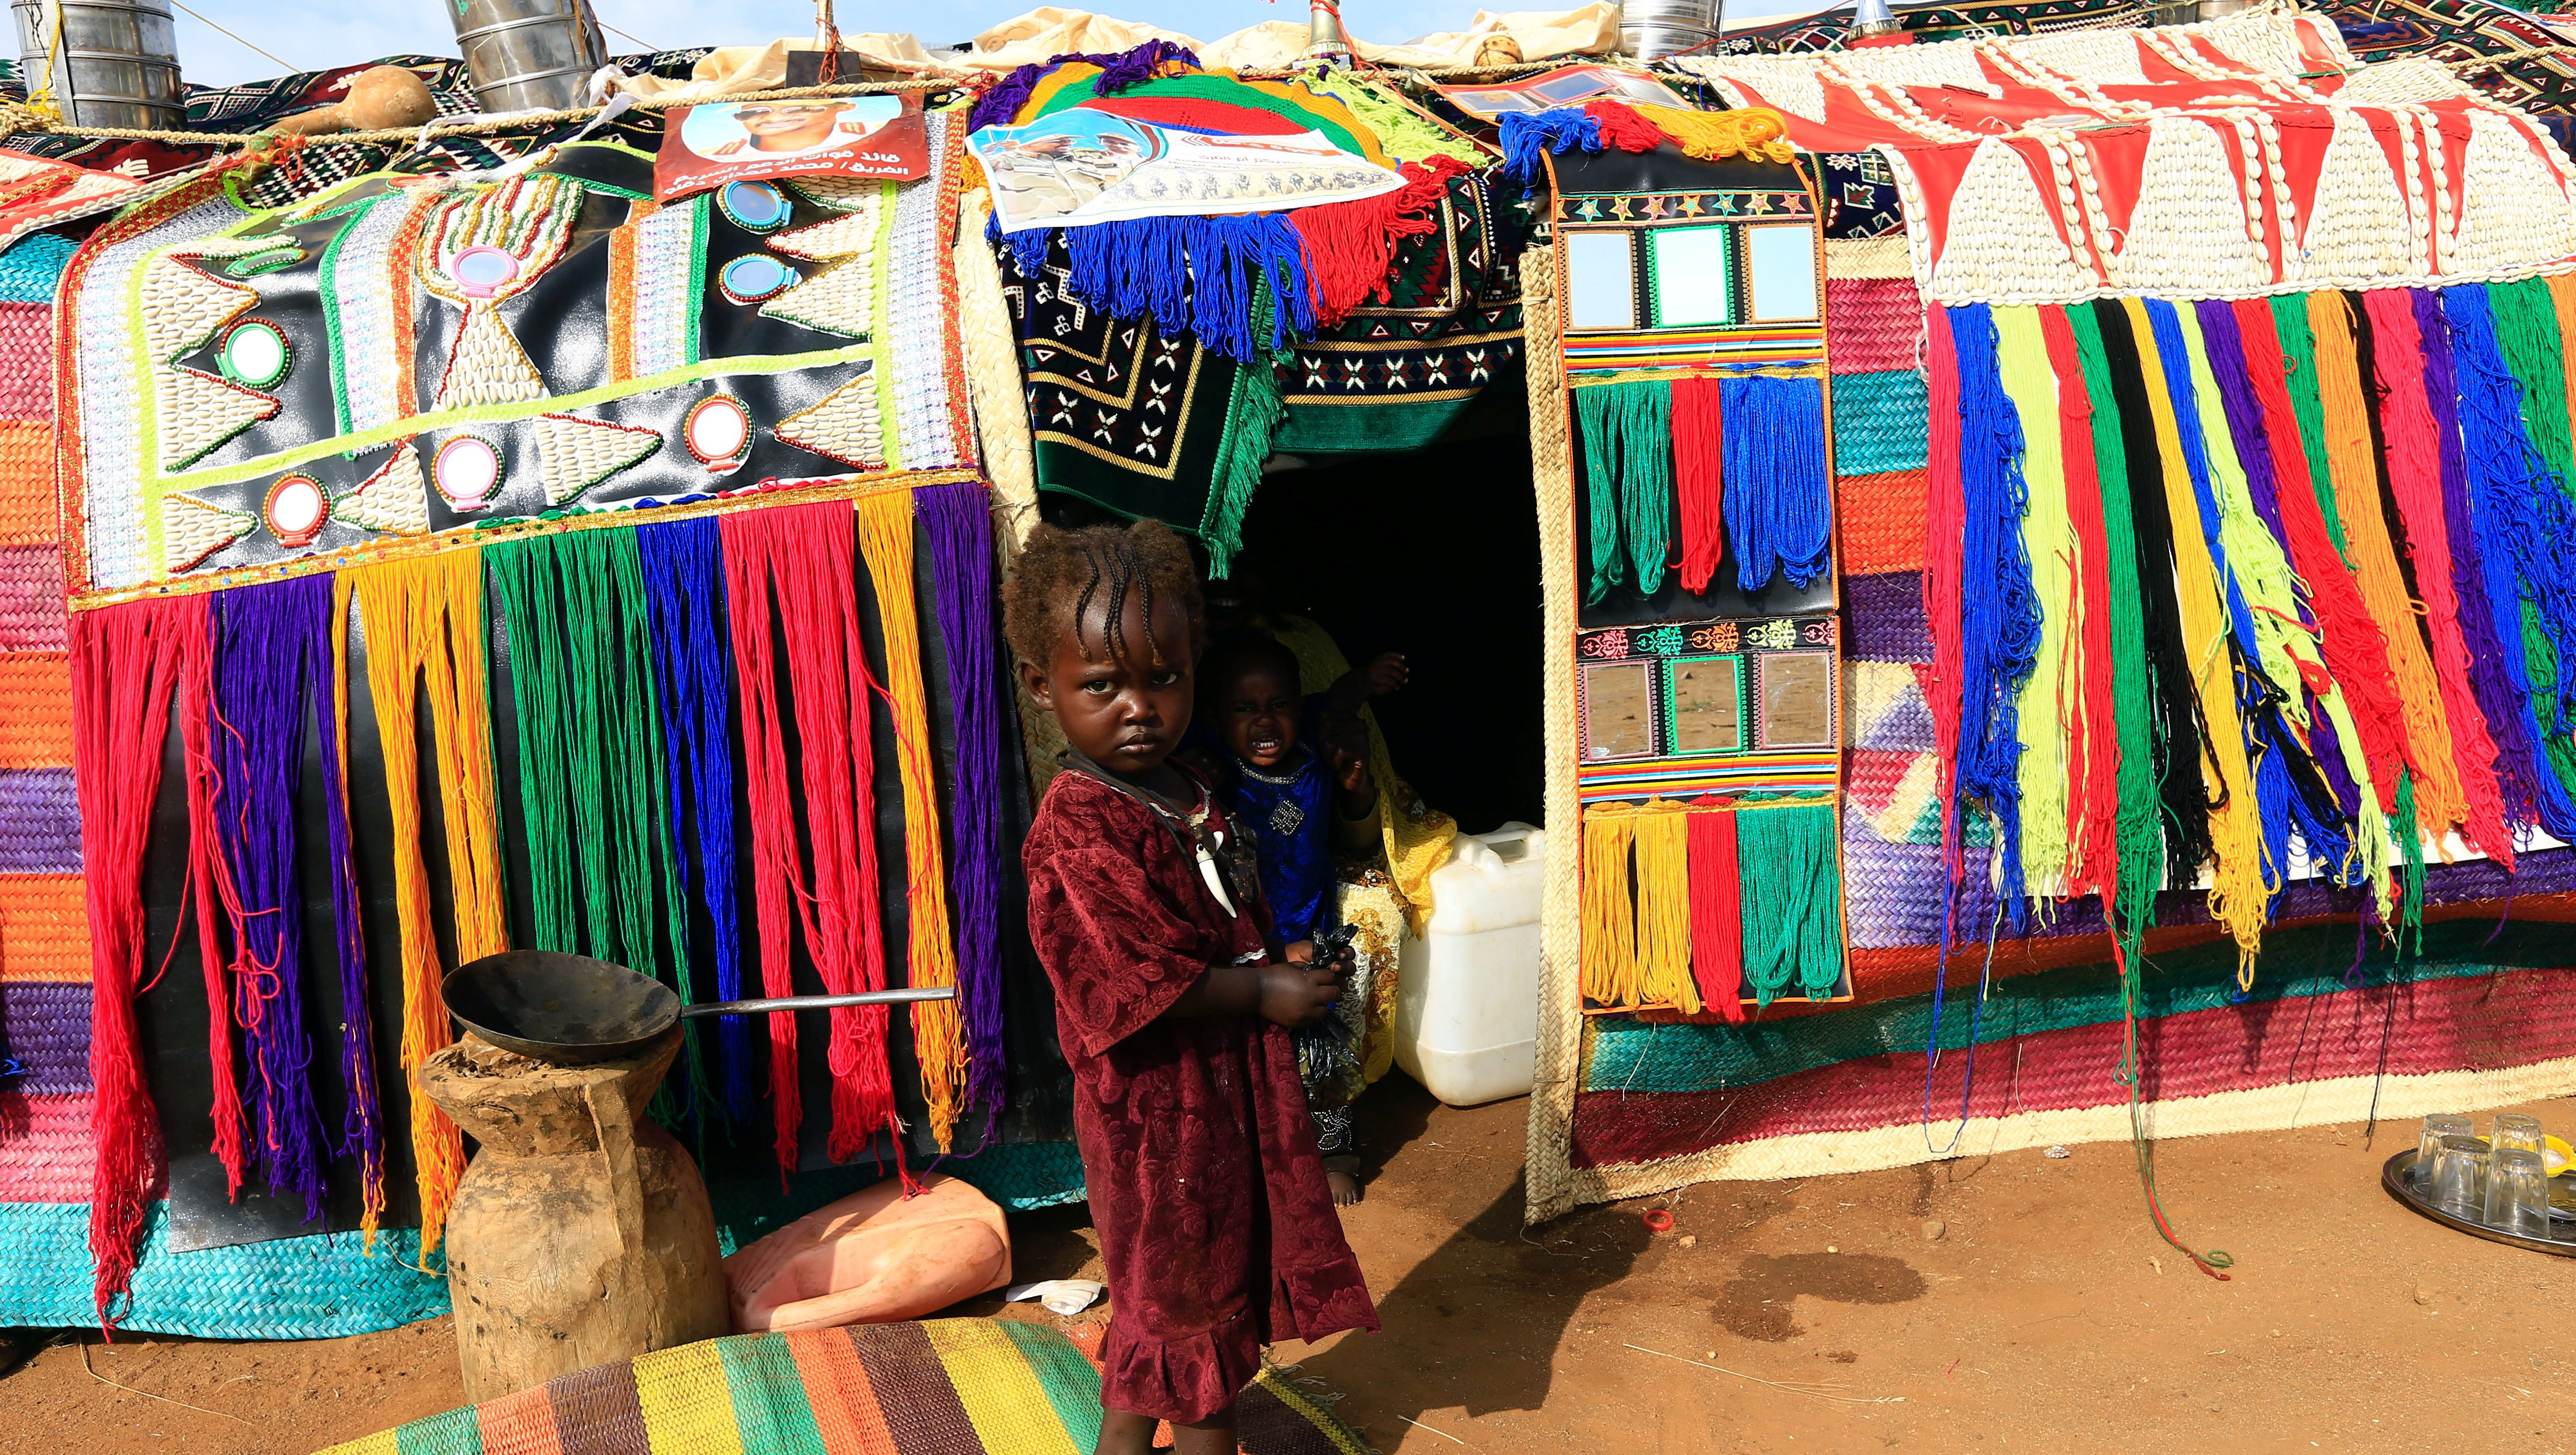 A child stands in front of a decorated house during Sudanese President's Omar al-Bashir visit to the war-torn Darfur region at Rapid Support Forces Headquarter in Umm Al-Qura, Darfur, Sudan September 23, 2017.